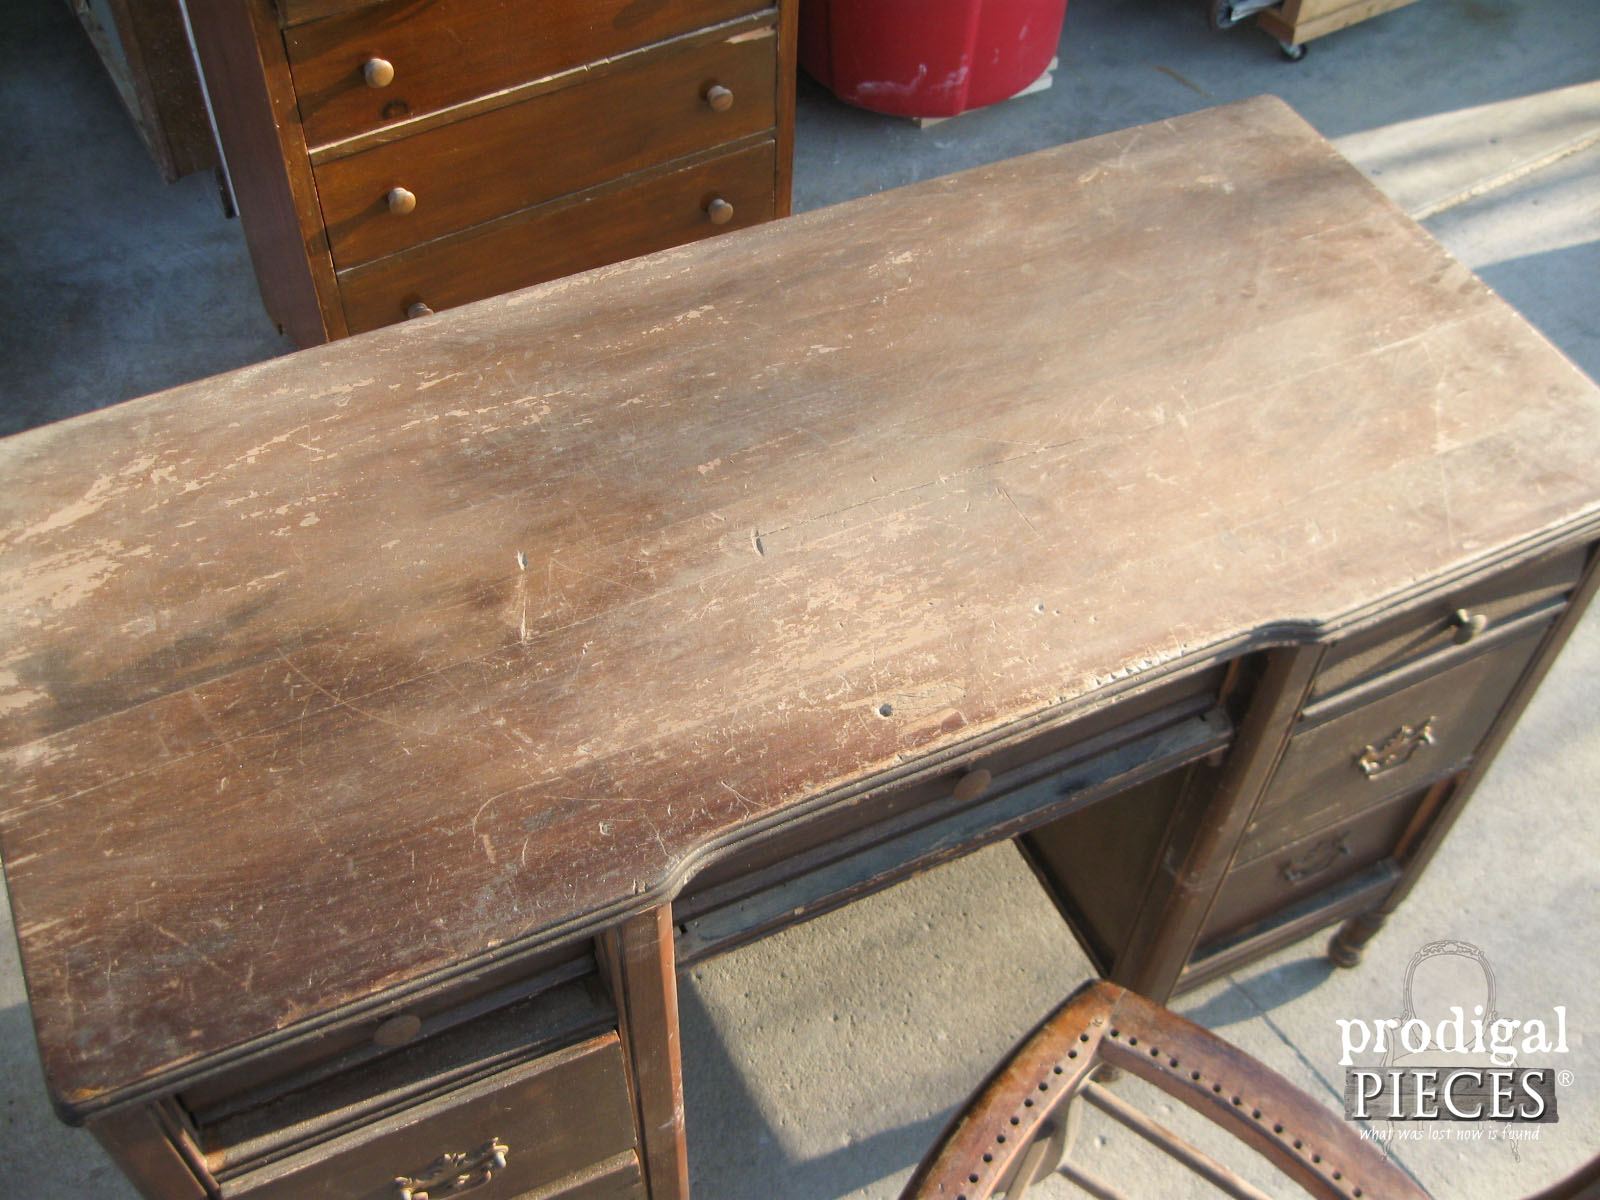 Antique Desk has Damaged Top | Prodigal Pieces | www.prodigalpieces.com